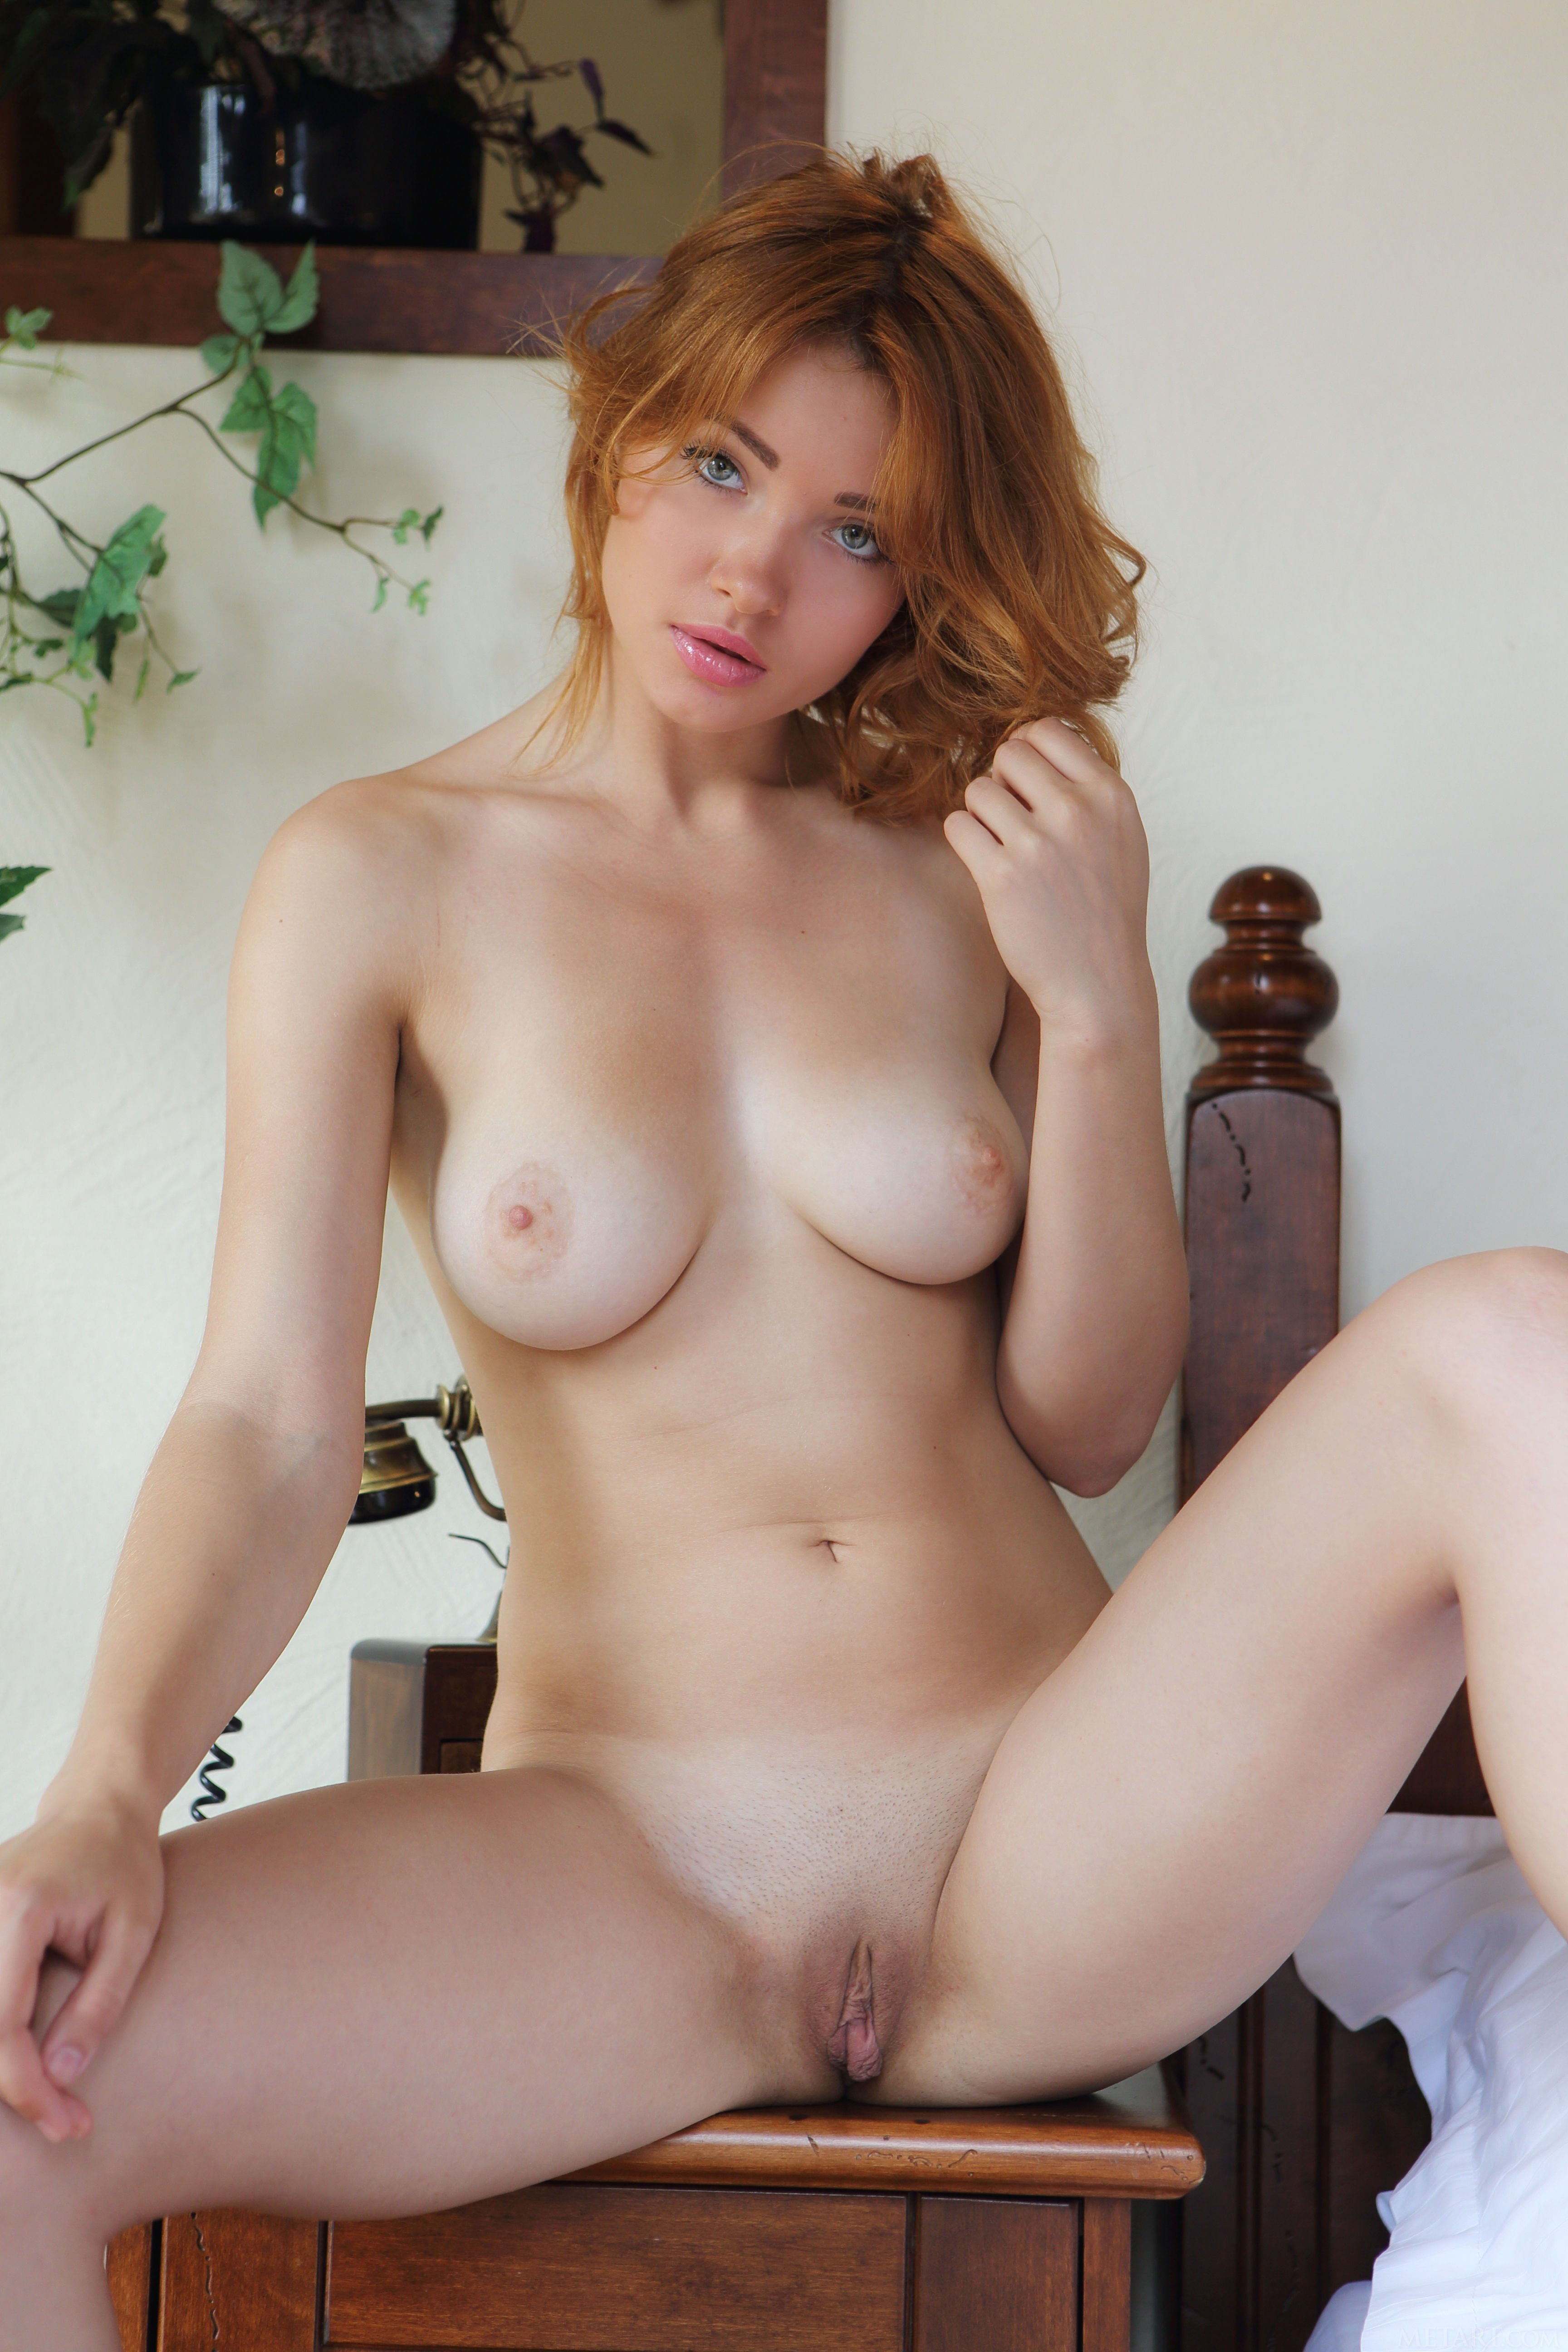 Redheads nudes free shaved big tits, poor girl shows her vagina for money